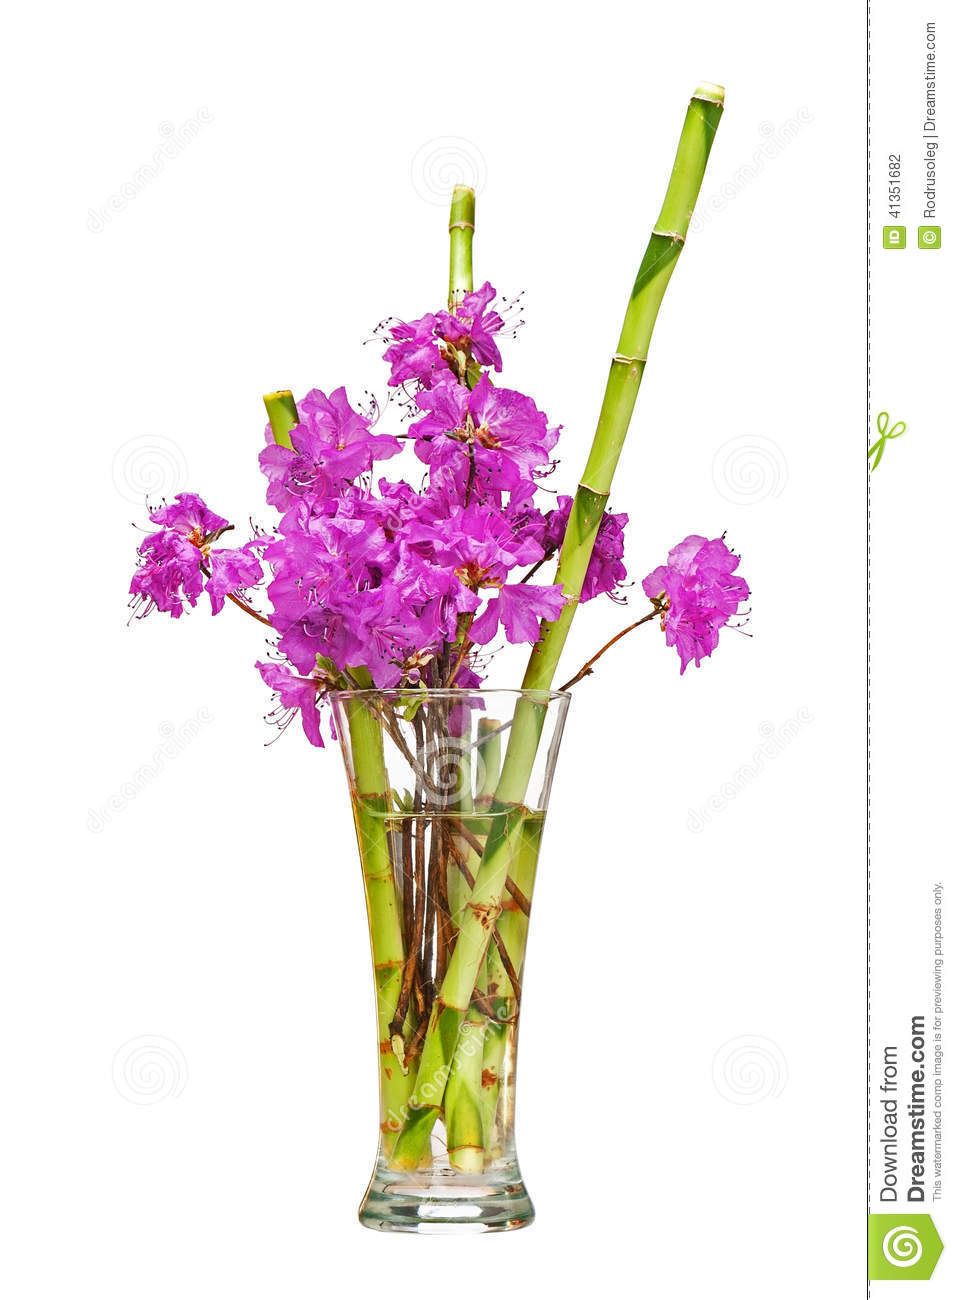 Colorful Flower Bouquet From Purple Rhododendron Flowers Stock Photo Image 41351682